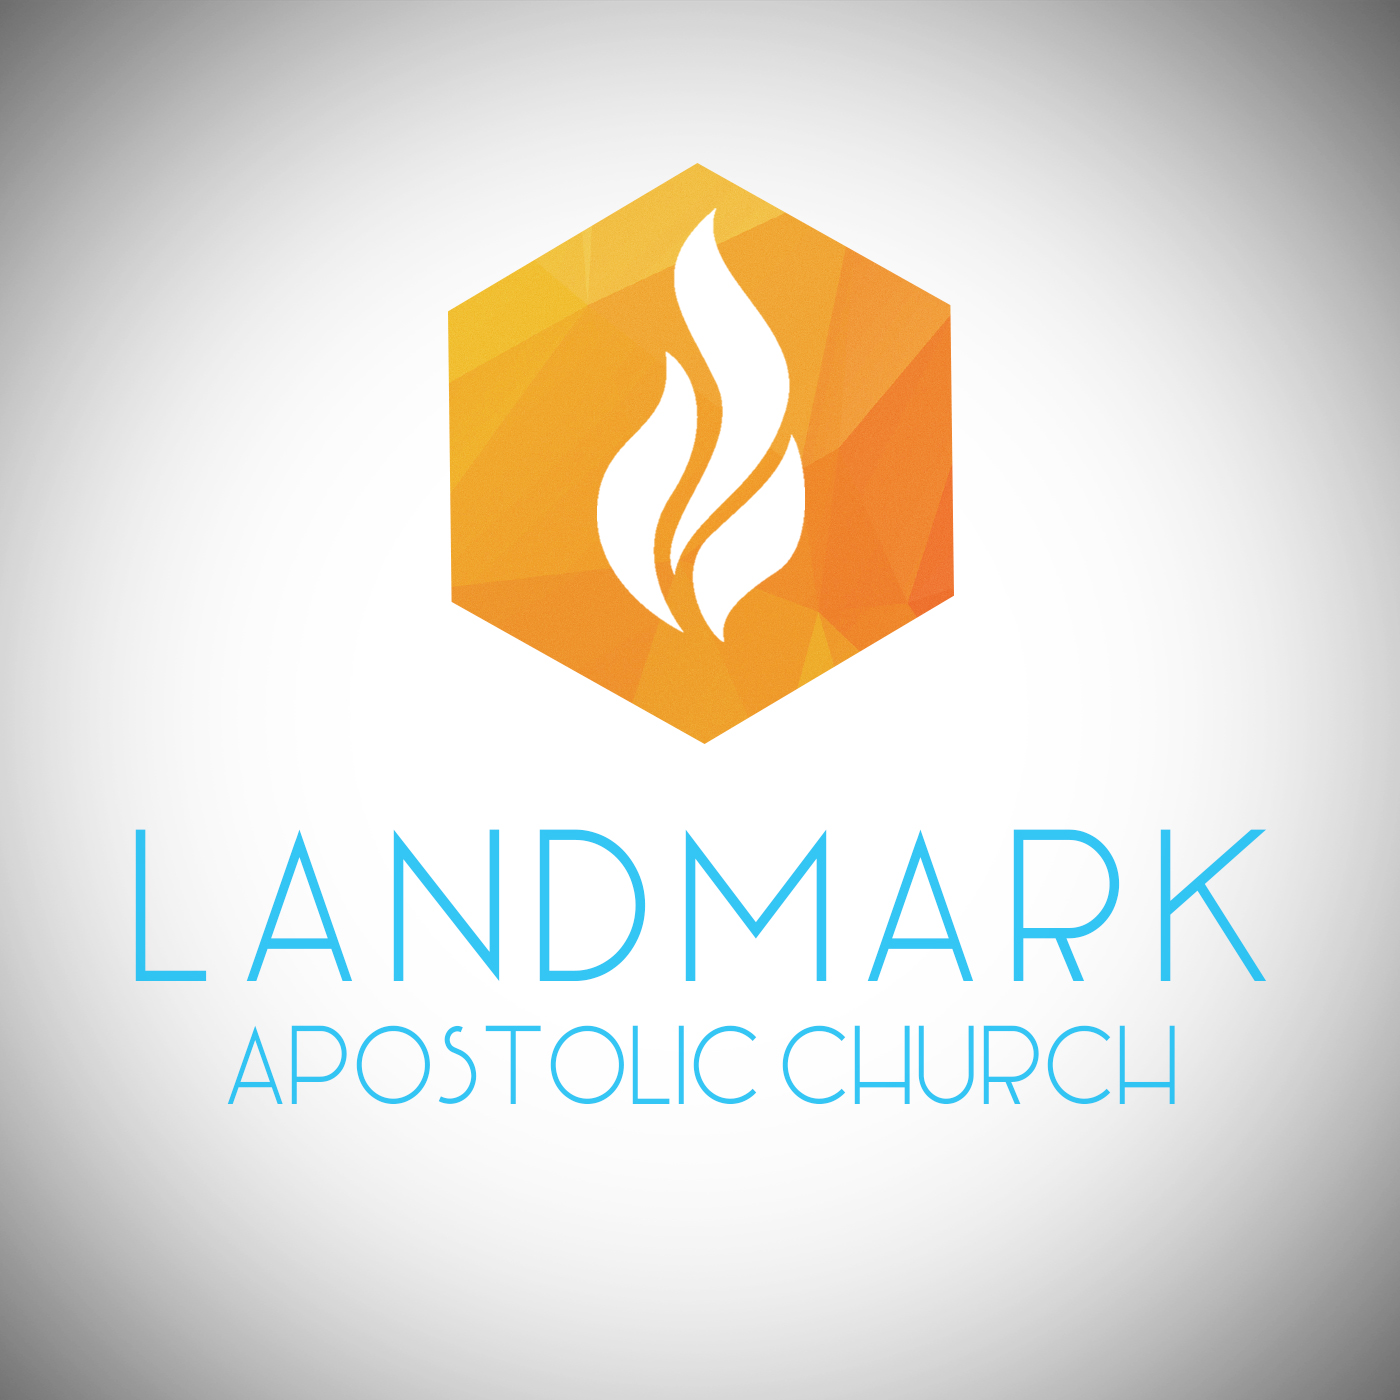 Landmark Apostolic Church: UPC